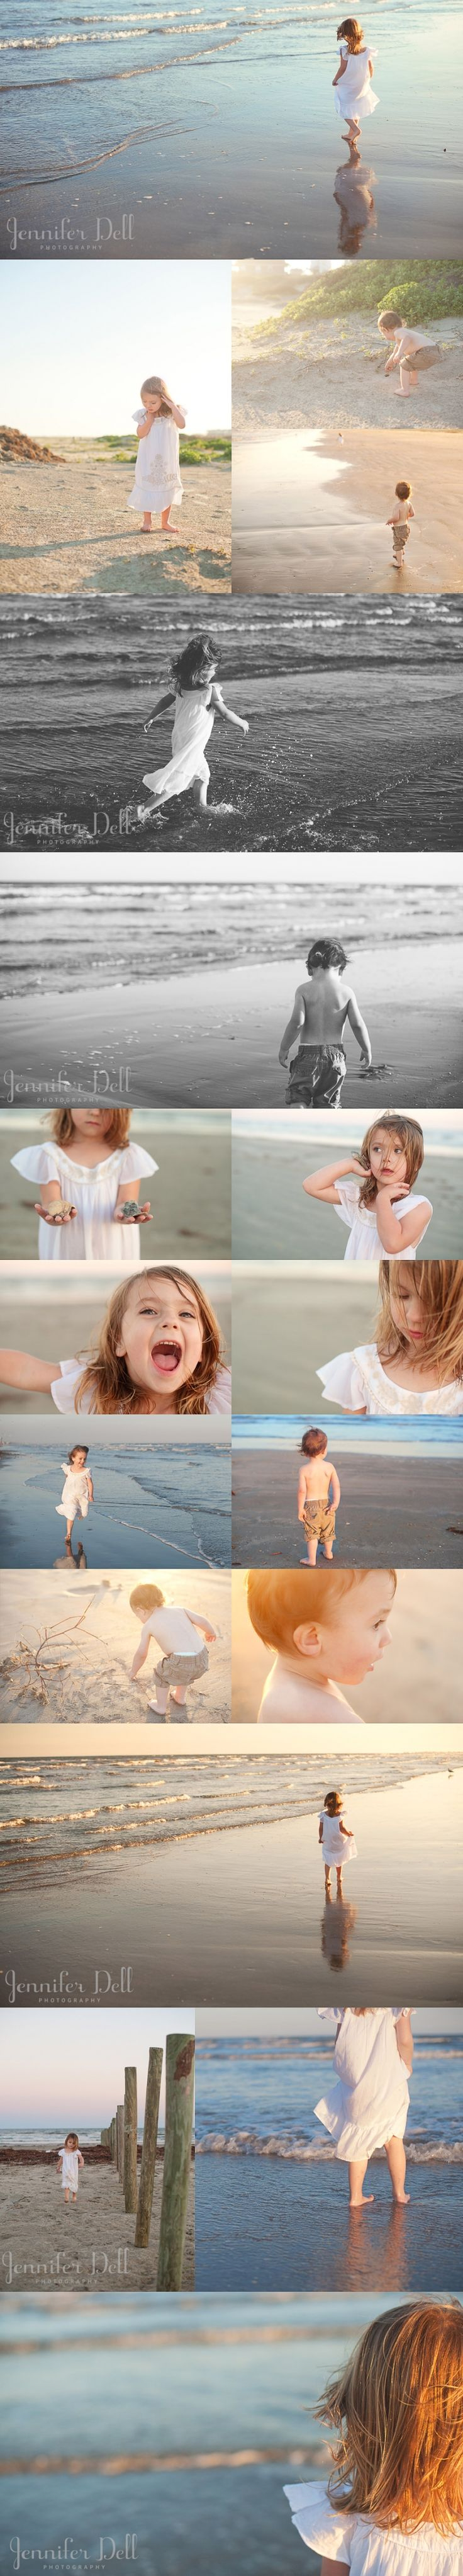 houston-child-photographer  © Jennifer Dell Photography